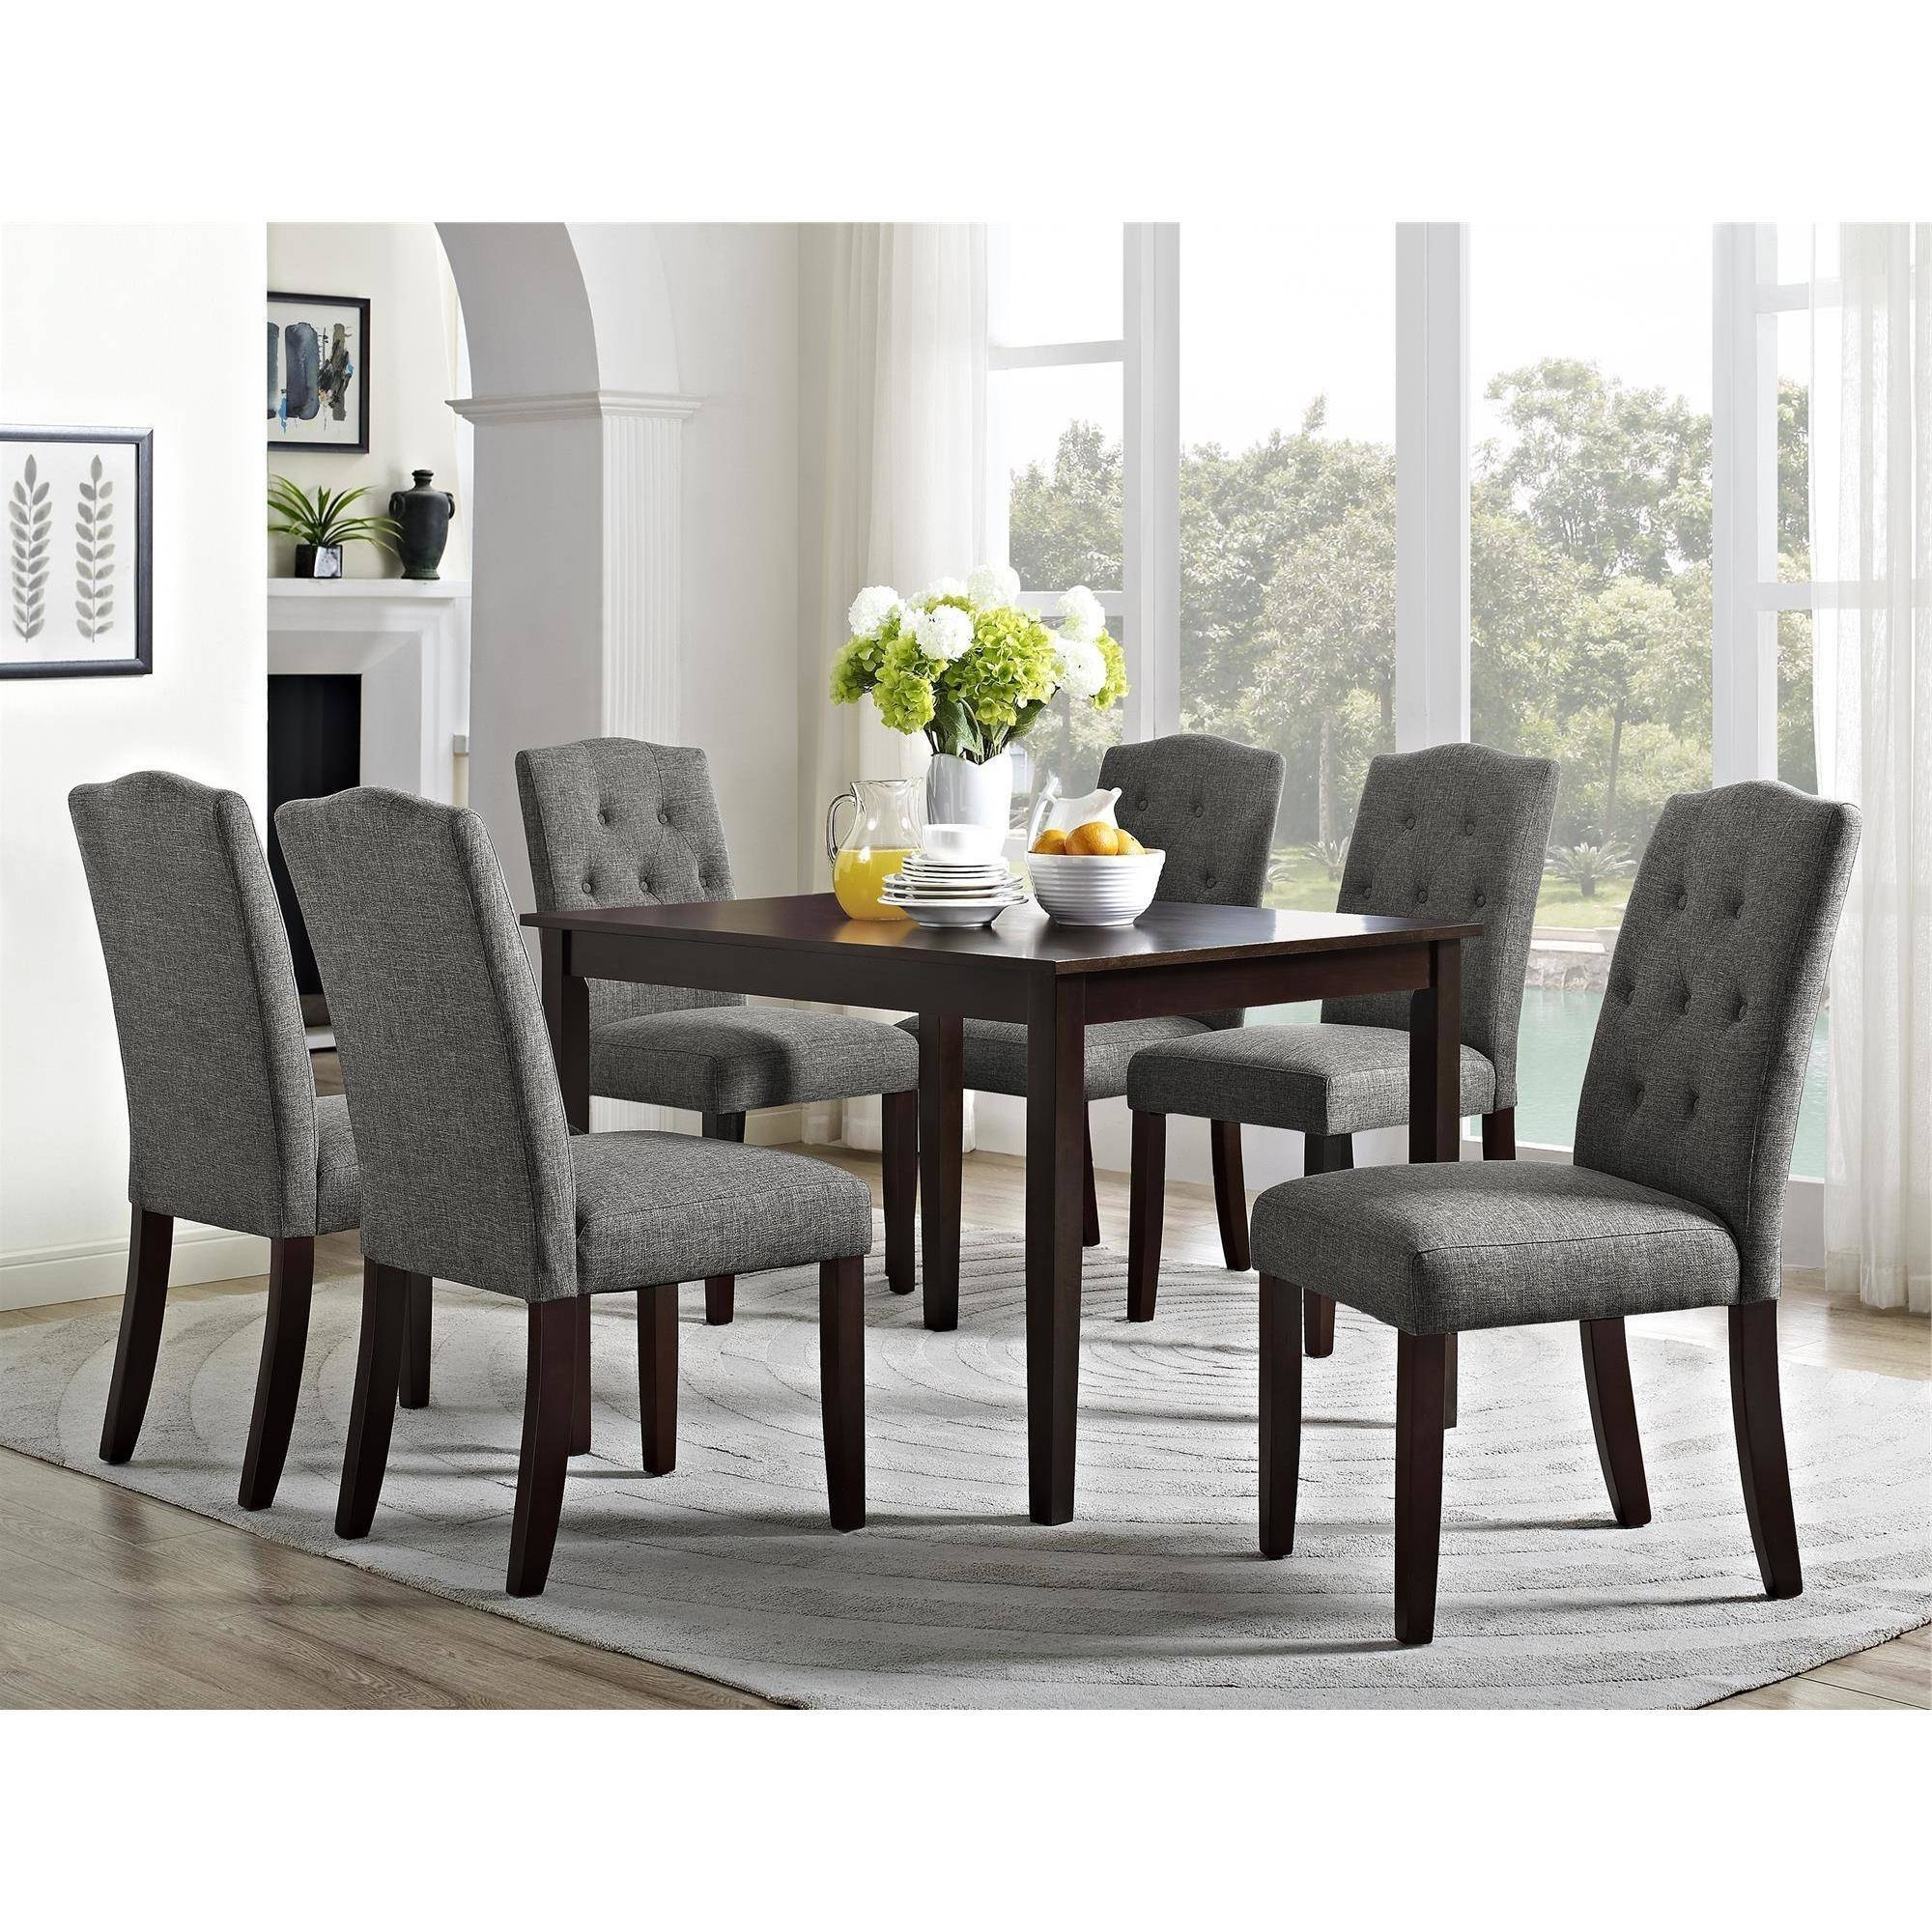 Probably Terrific Best Dining Table With Gray Chairs Picture Throughout Well Liked Jaxon Grey 5 Piece Extension Counter Sets With Wood Stools (View 25 of 25)